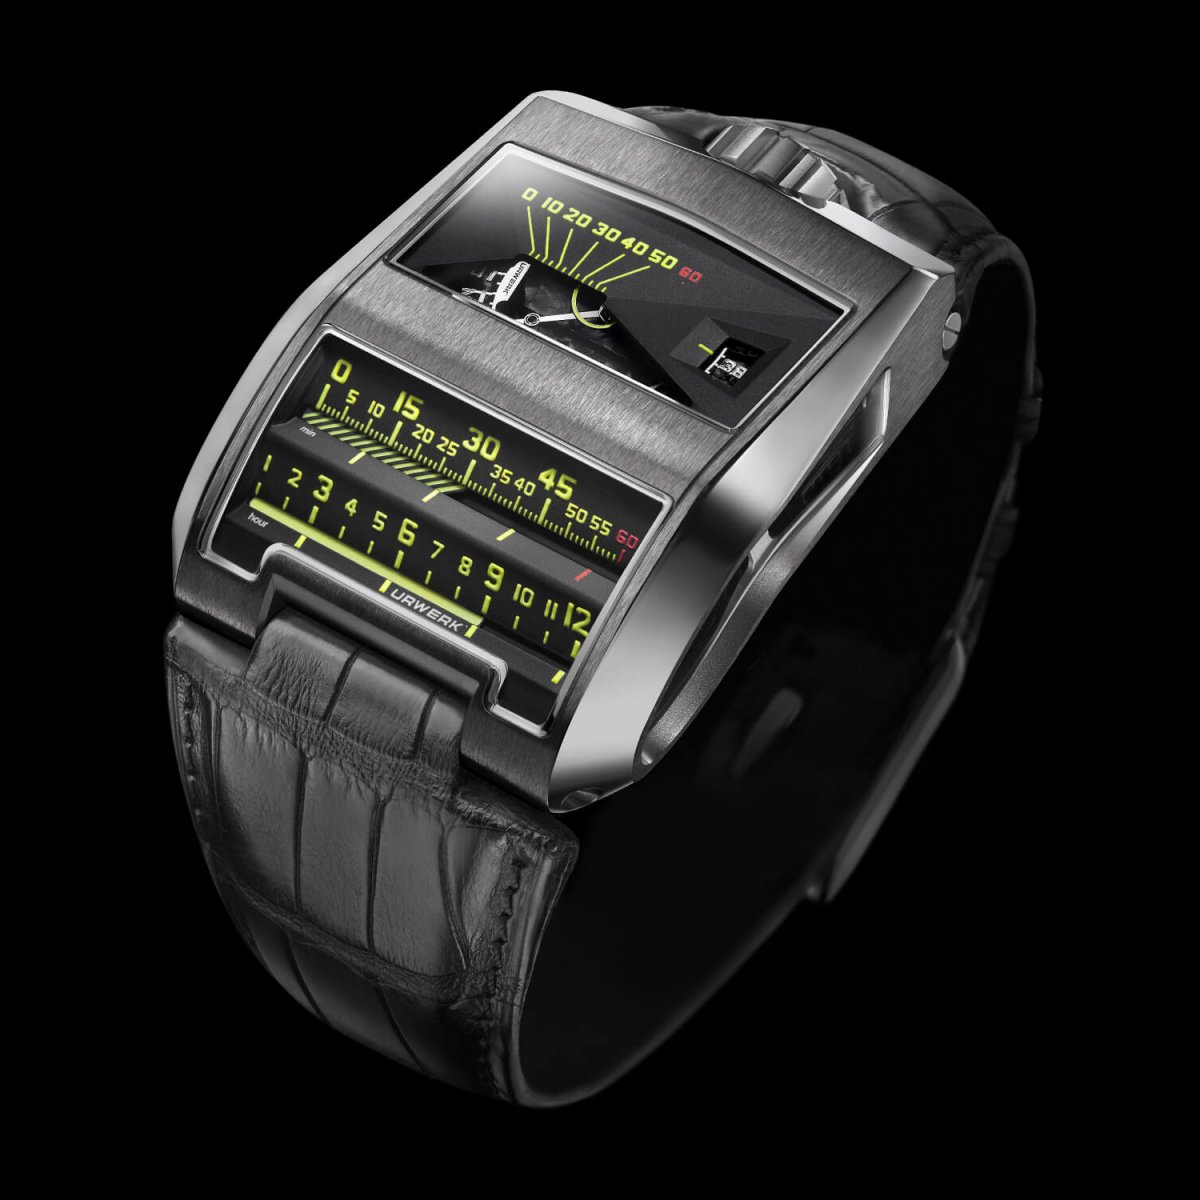 Swiss timepieces special-project watch UR-CC1